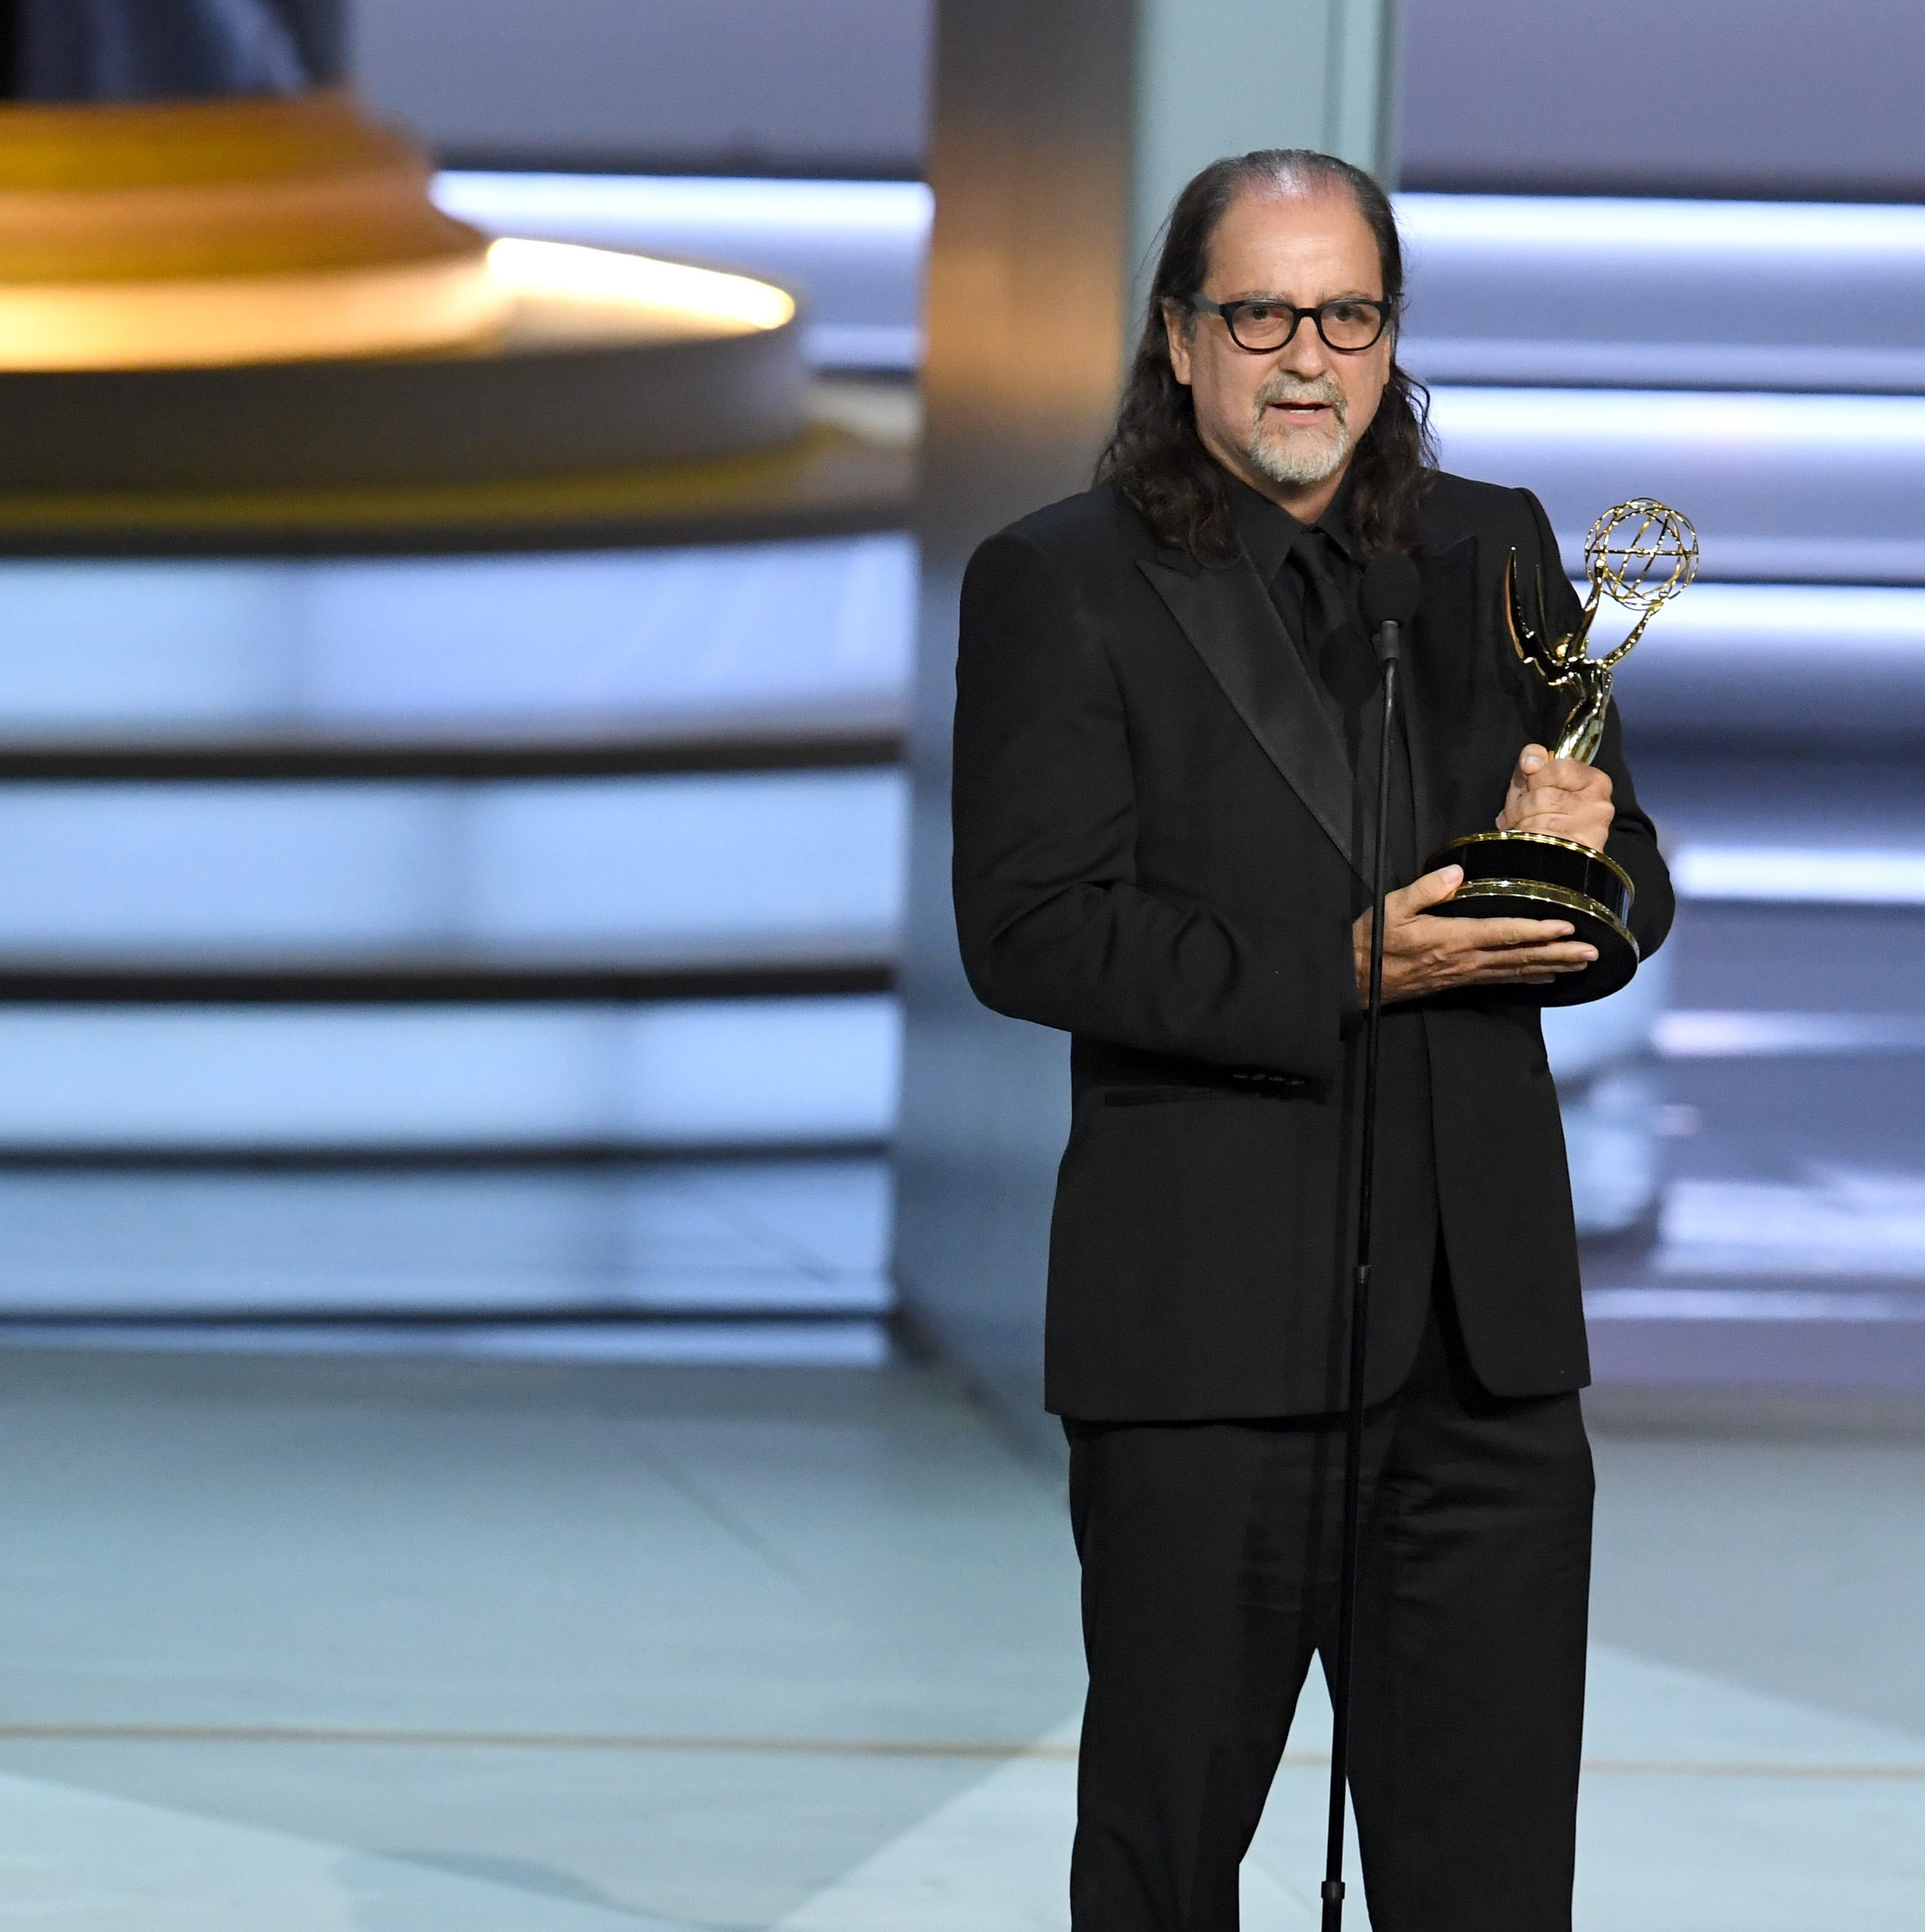 Emmys marriage proposal: Twitter reacts to Glenn Weiss popping the question